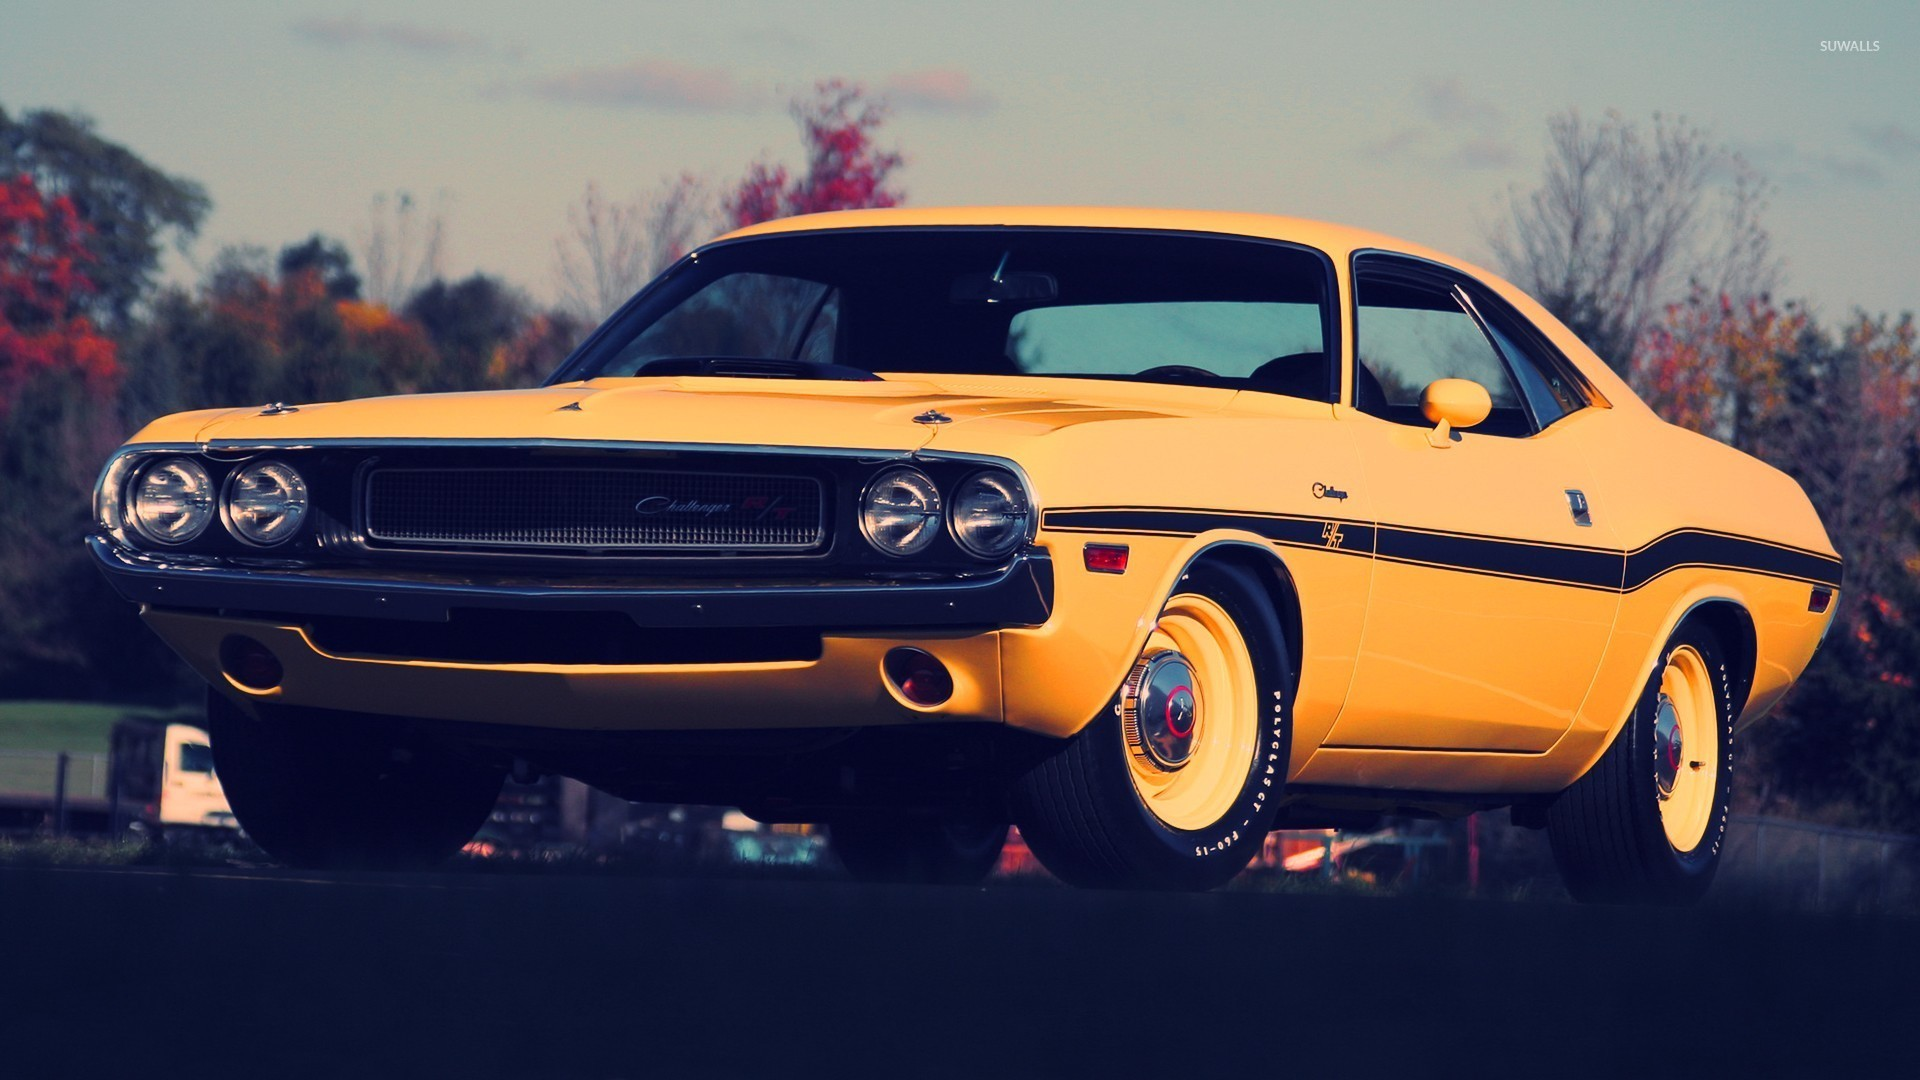 Dodge Challenger 1970 Wallpaper Yellow Dodge Challenger Front Side View Wallpaper Car Wallpapers